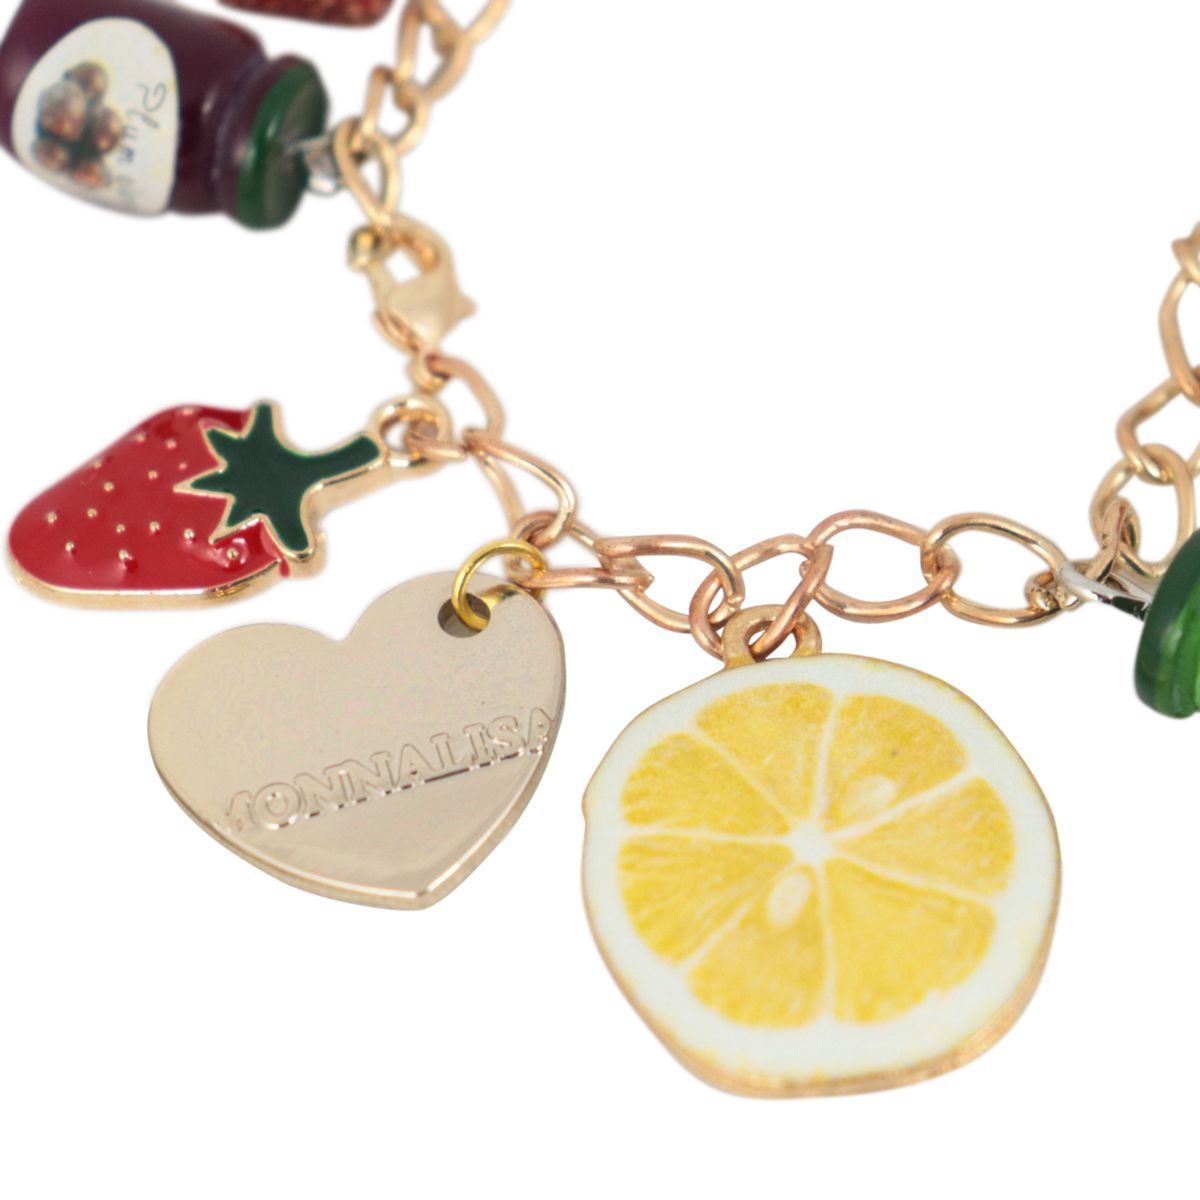 Bracelet with multicolor fruit charms Gold Monnalisa